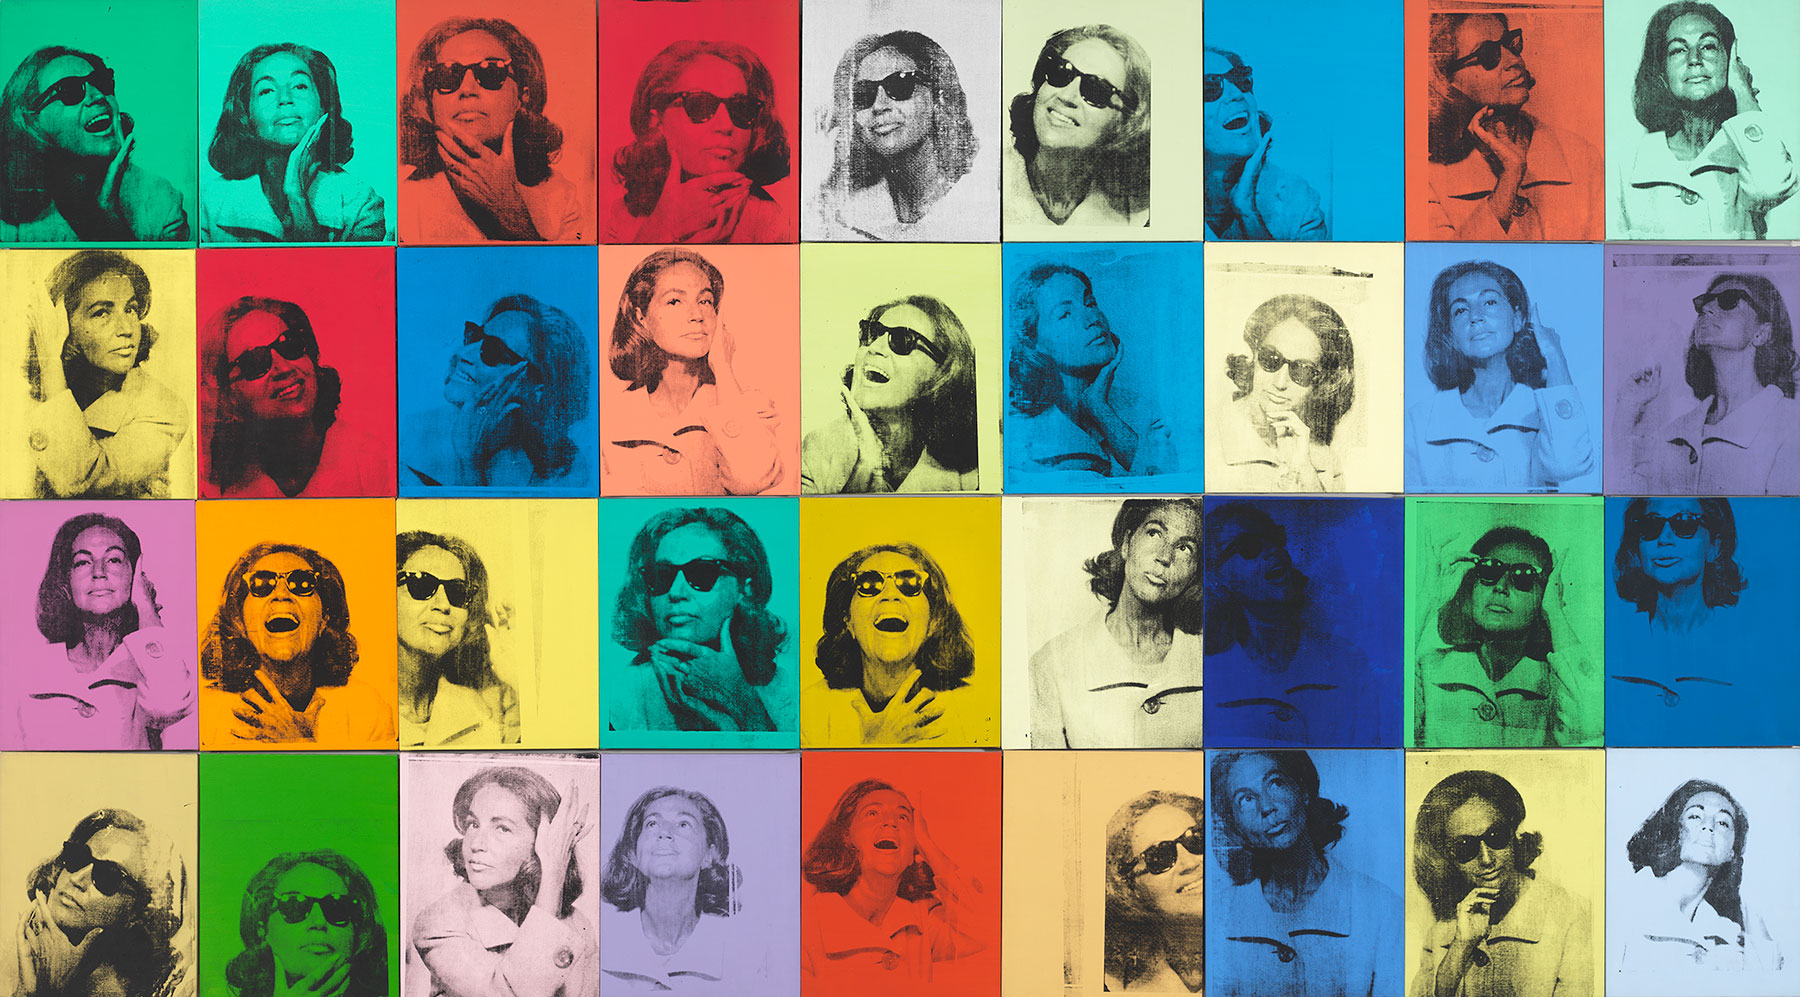 Ethel Scull 36 Times, 1963, by Andy Warhol